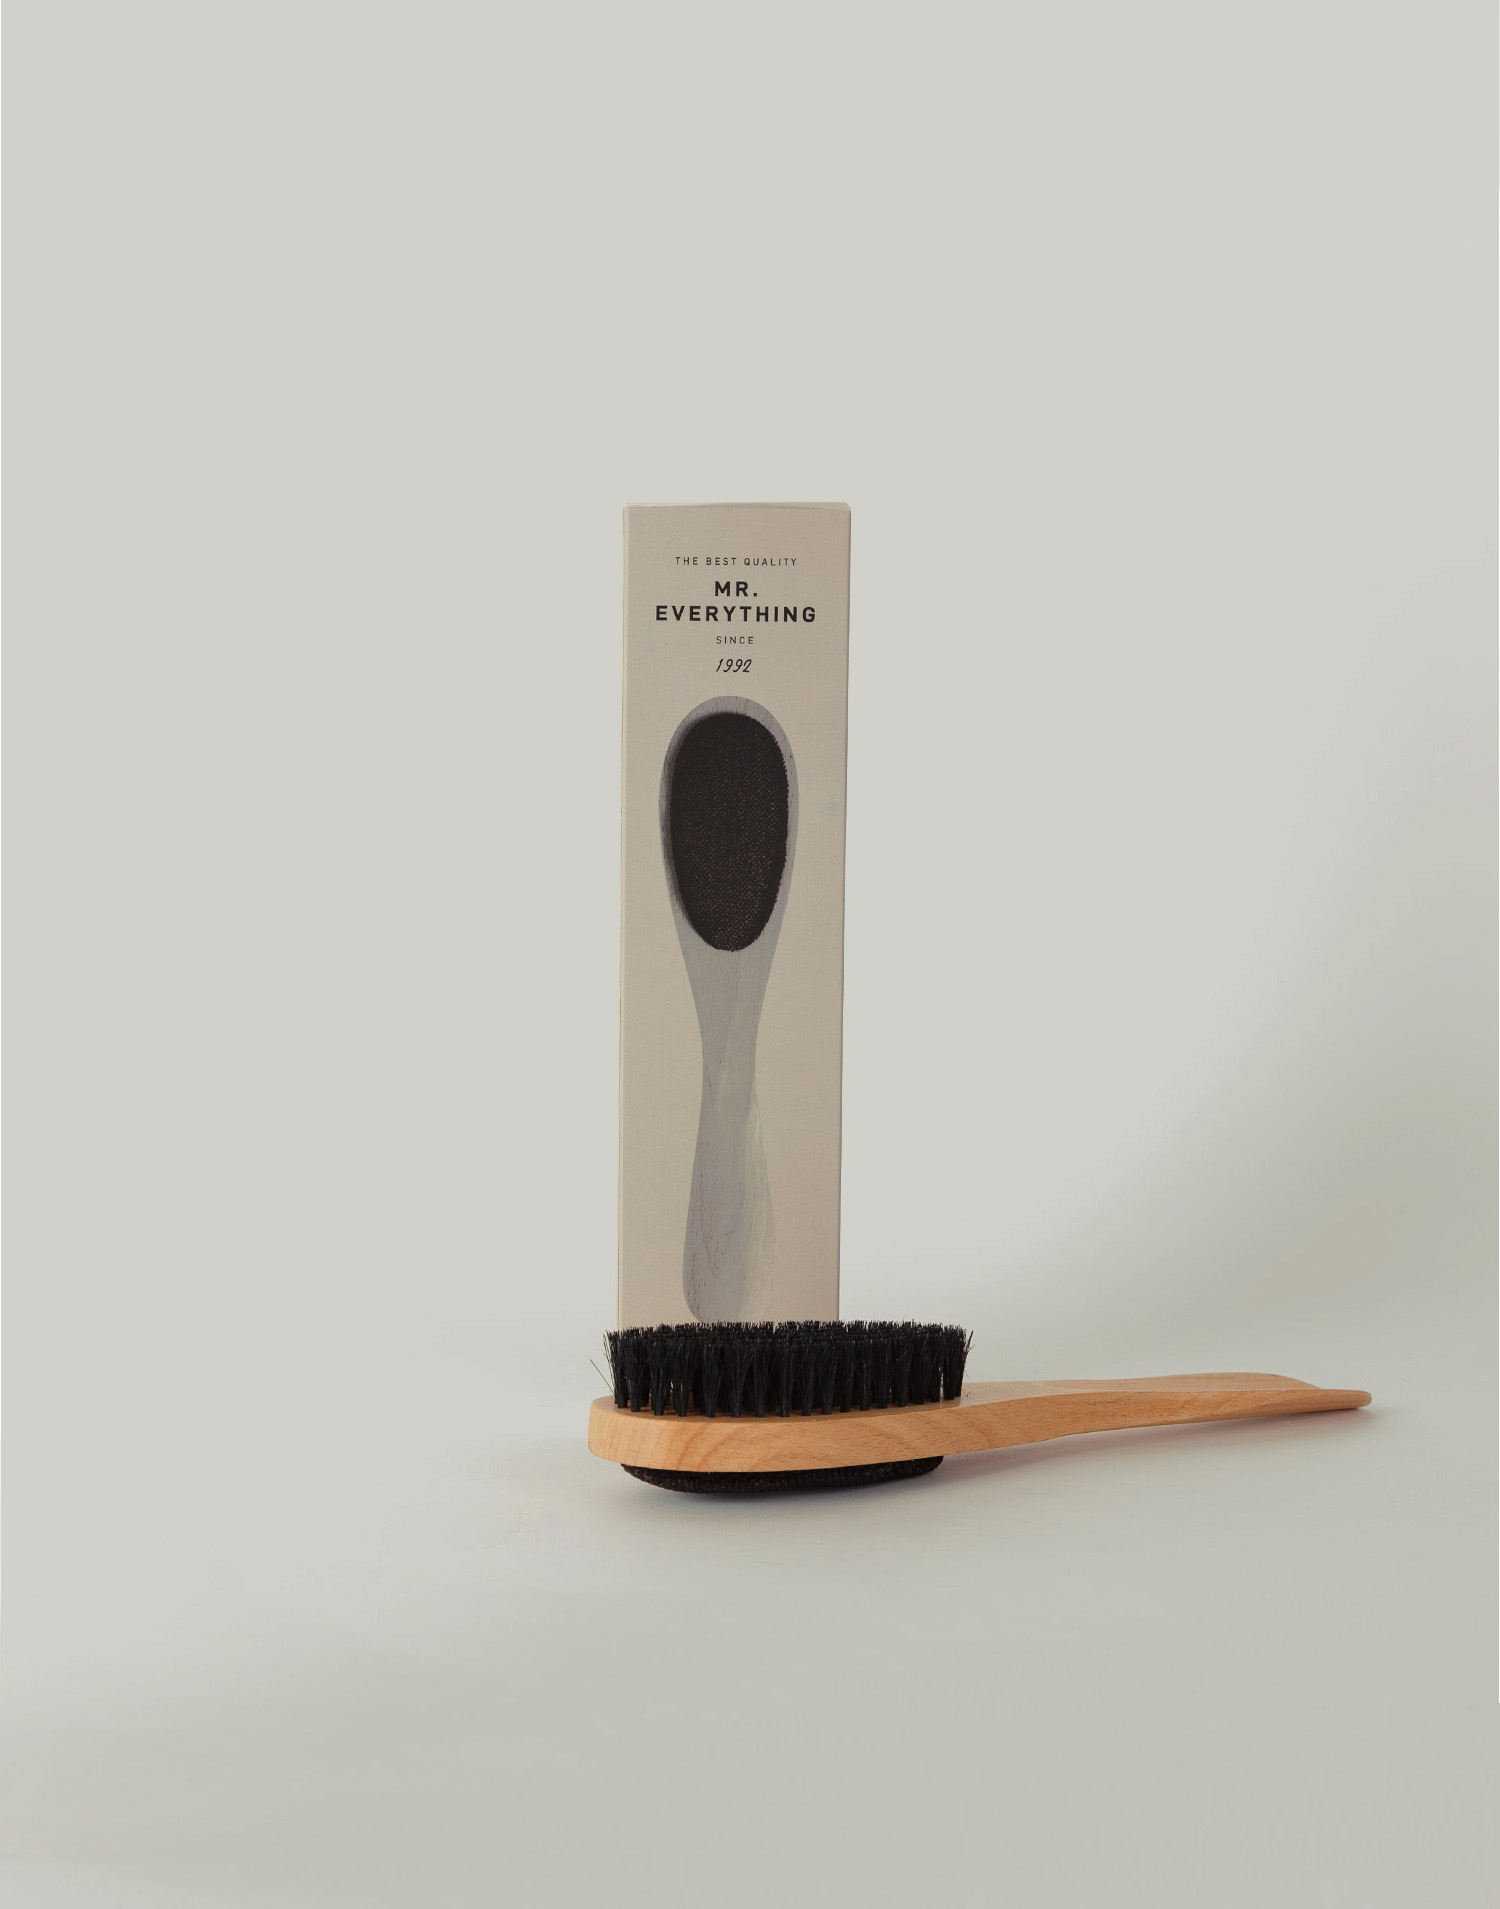 Brush, shoehorn and fluff remover